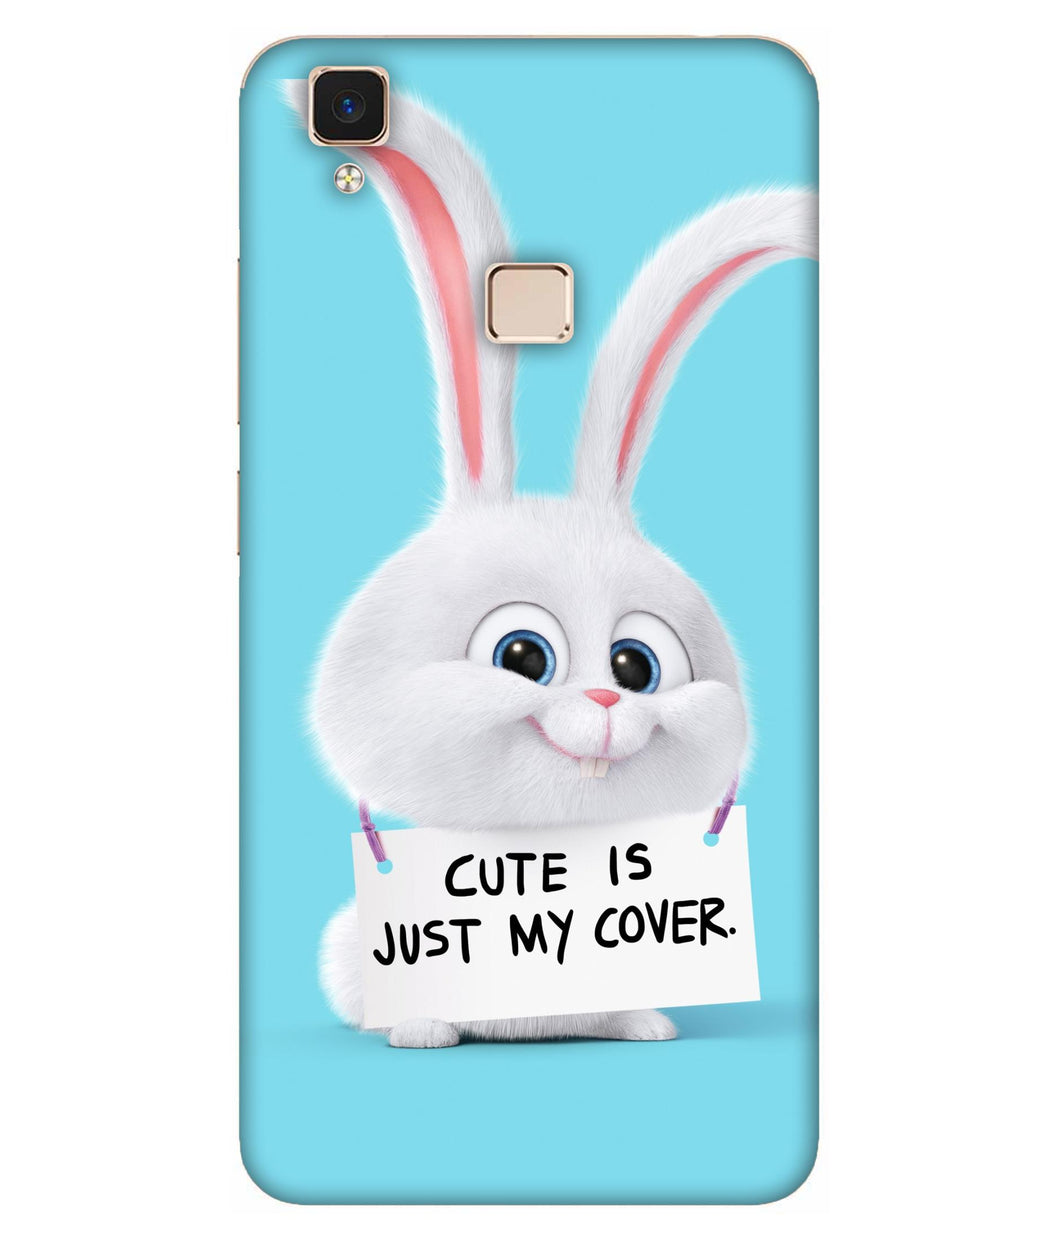 Vivo V3 Max Bunny Mobile cover